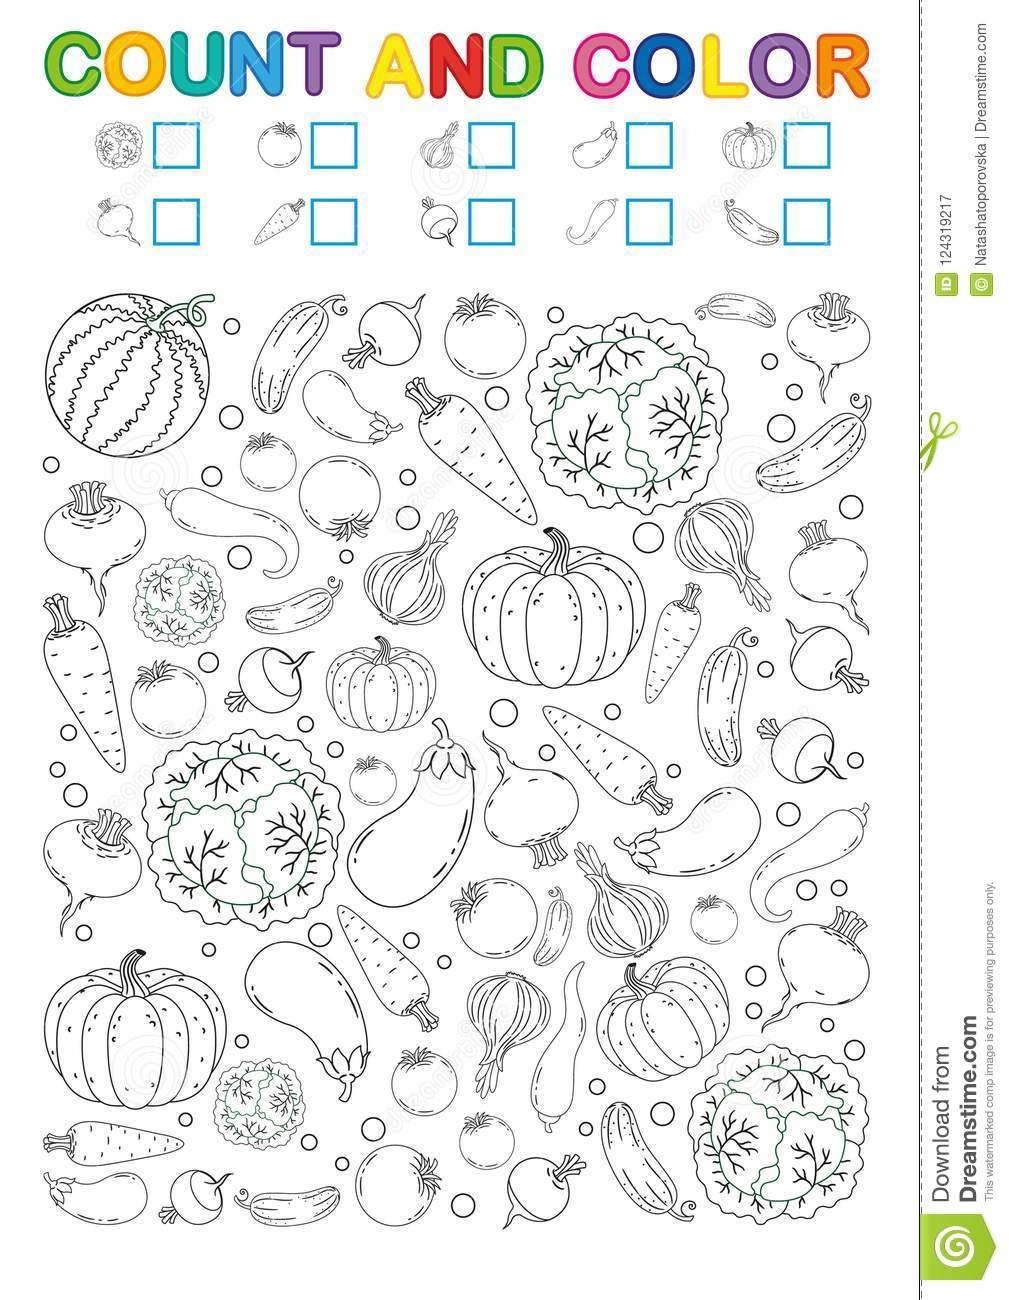 Coloring Worksheets for Middle School Worksheet Book Reading Level Chart Free Math Coloring